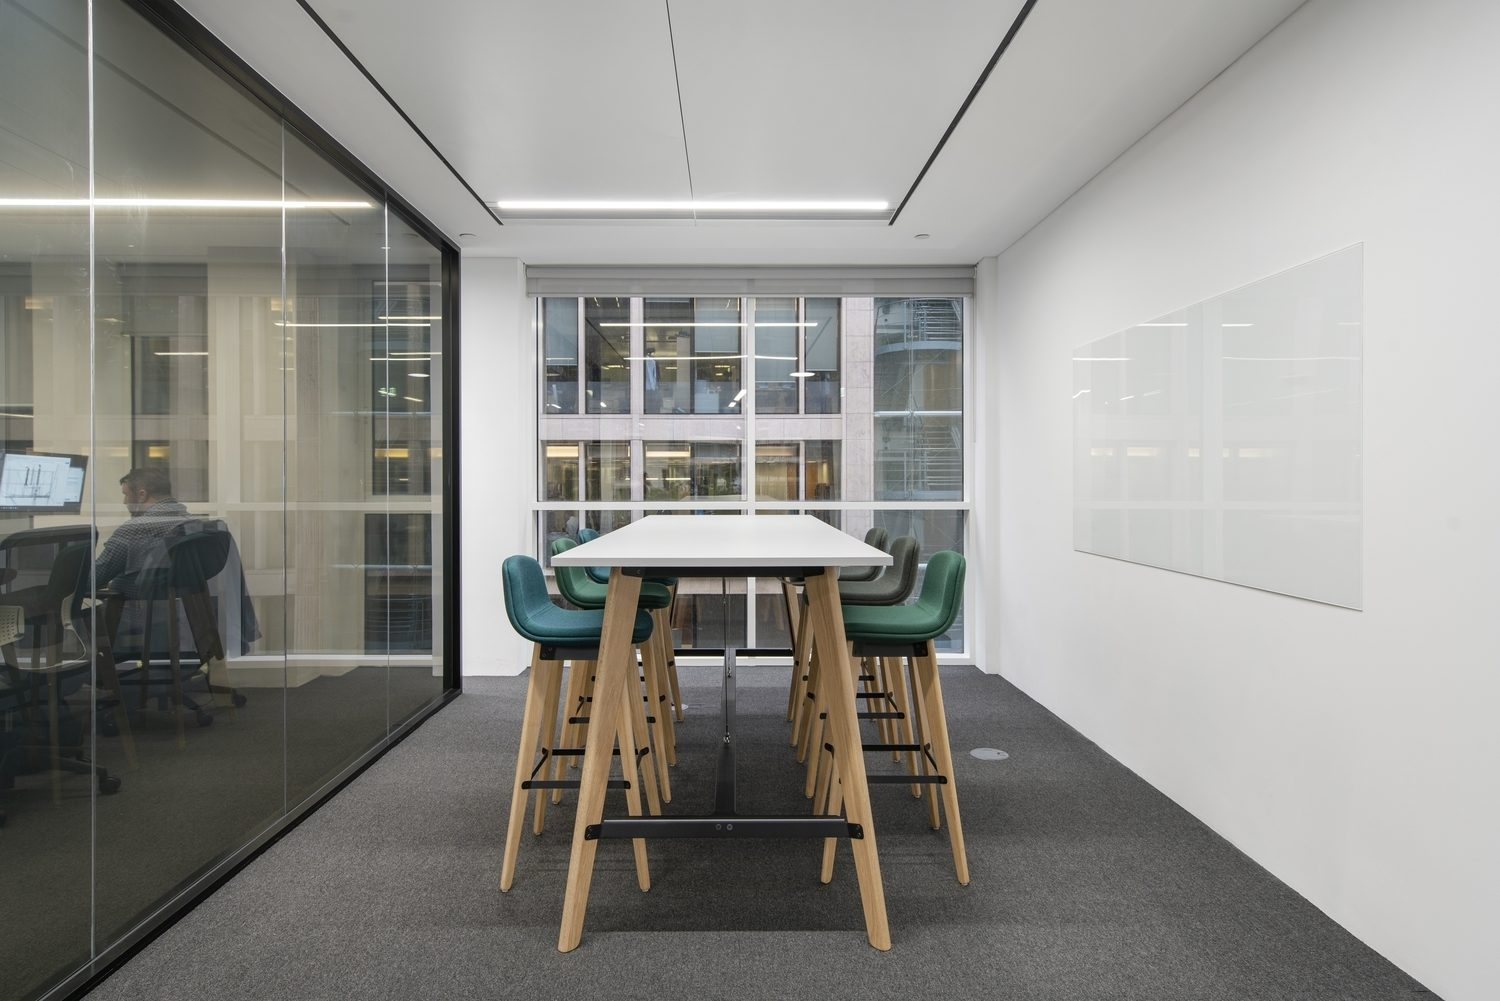 Medium meeting room designed for collaboration